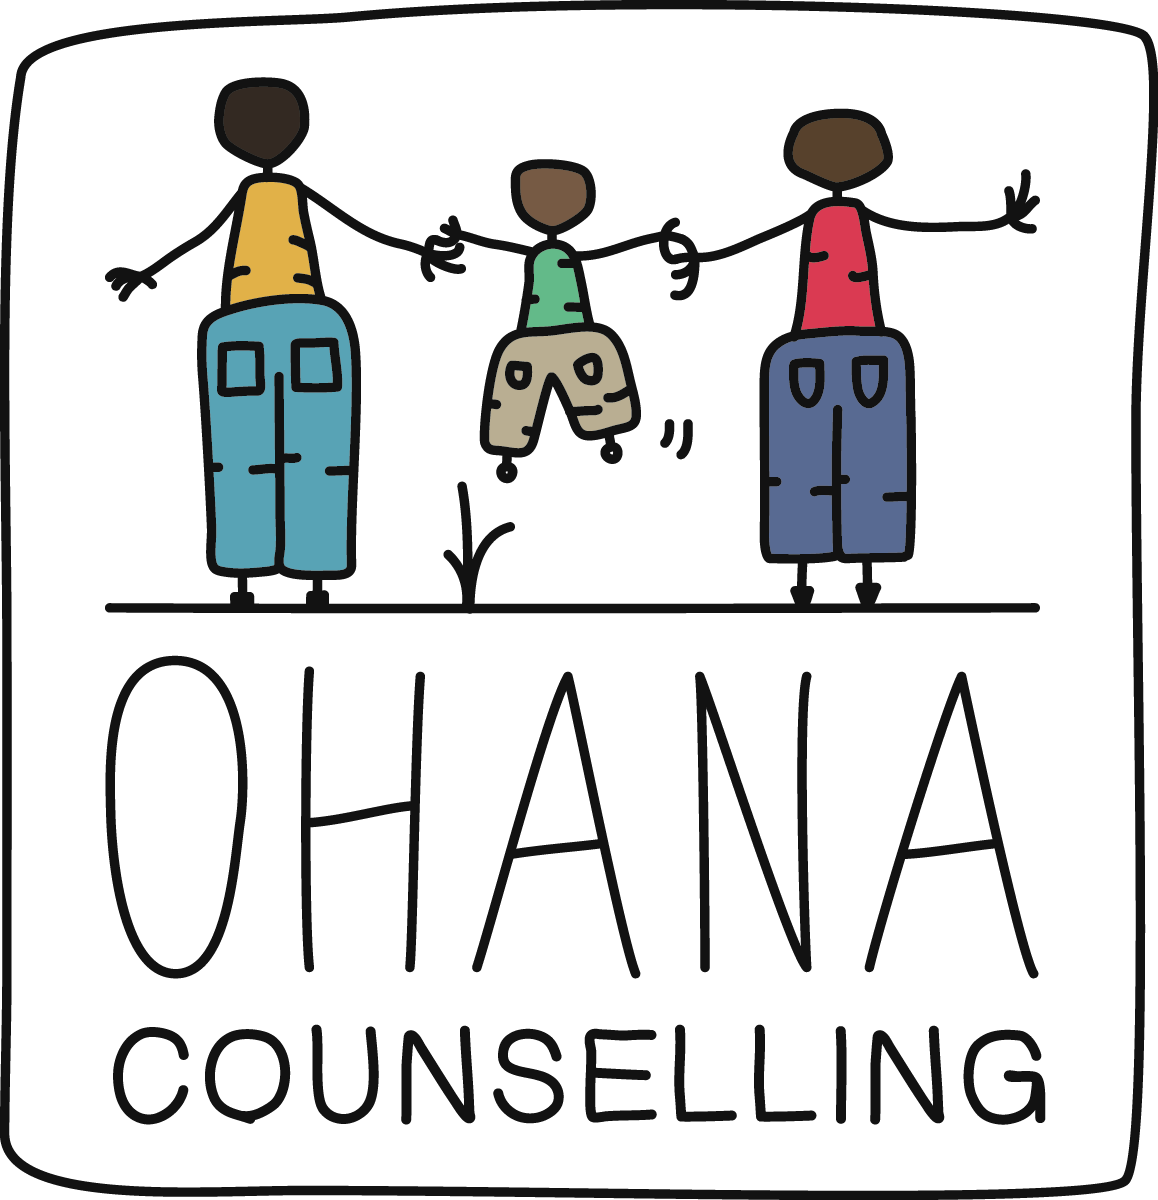 Need edgy design to attract young families to seek counselling as needed. Also... FYI OHANA is Hawaiian for family